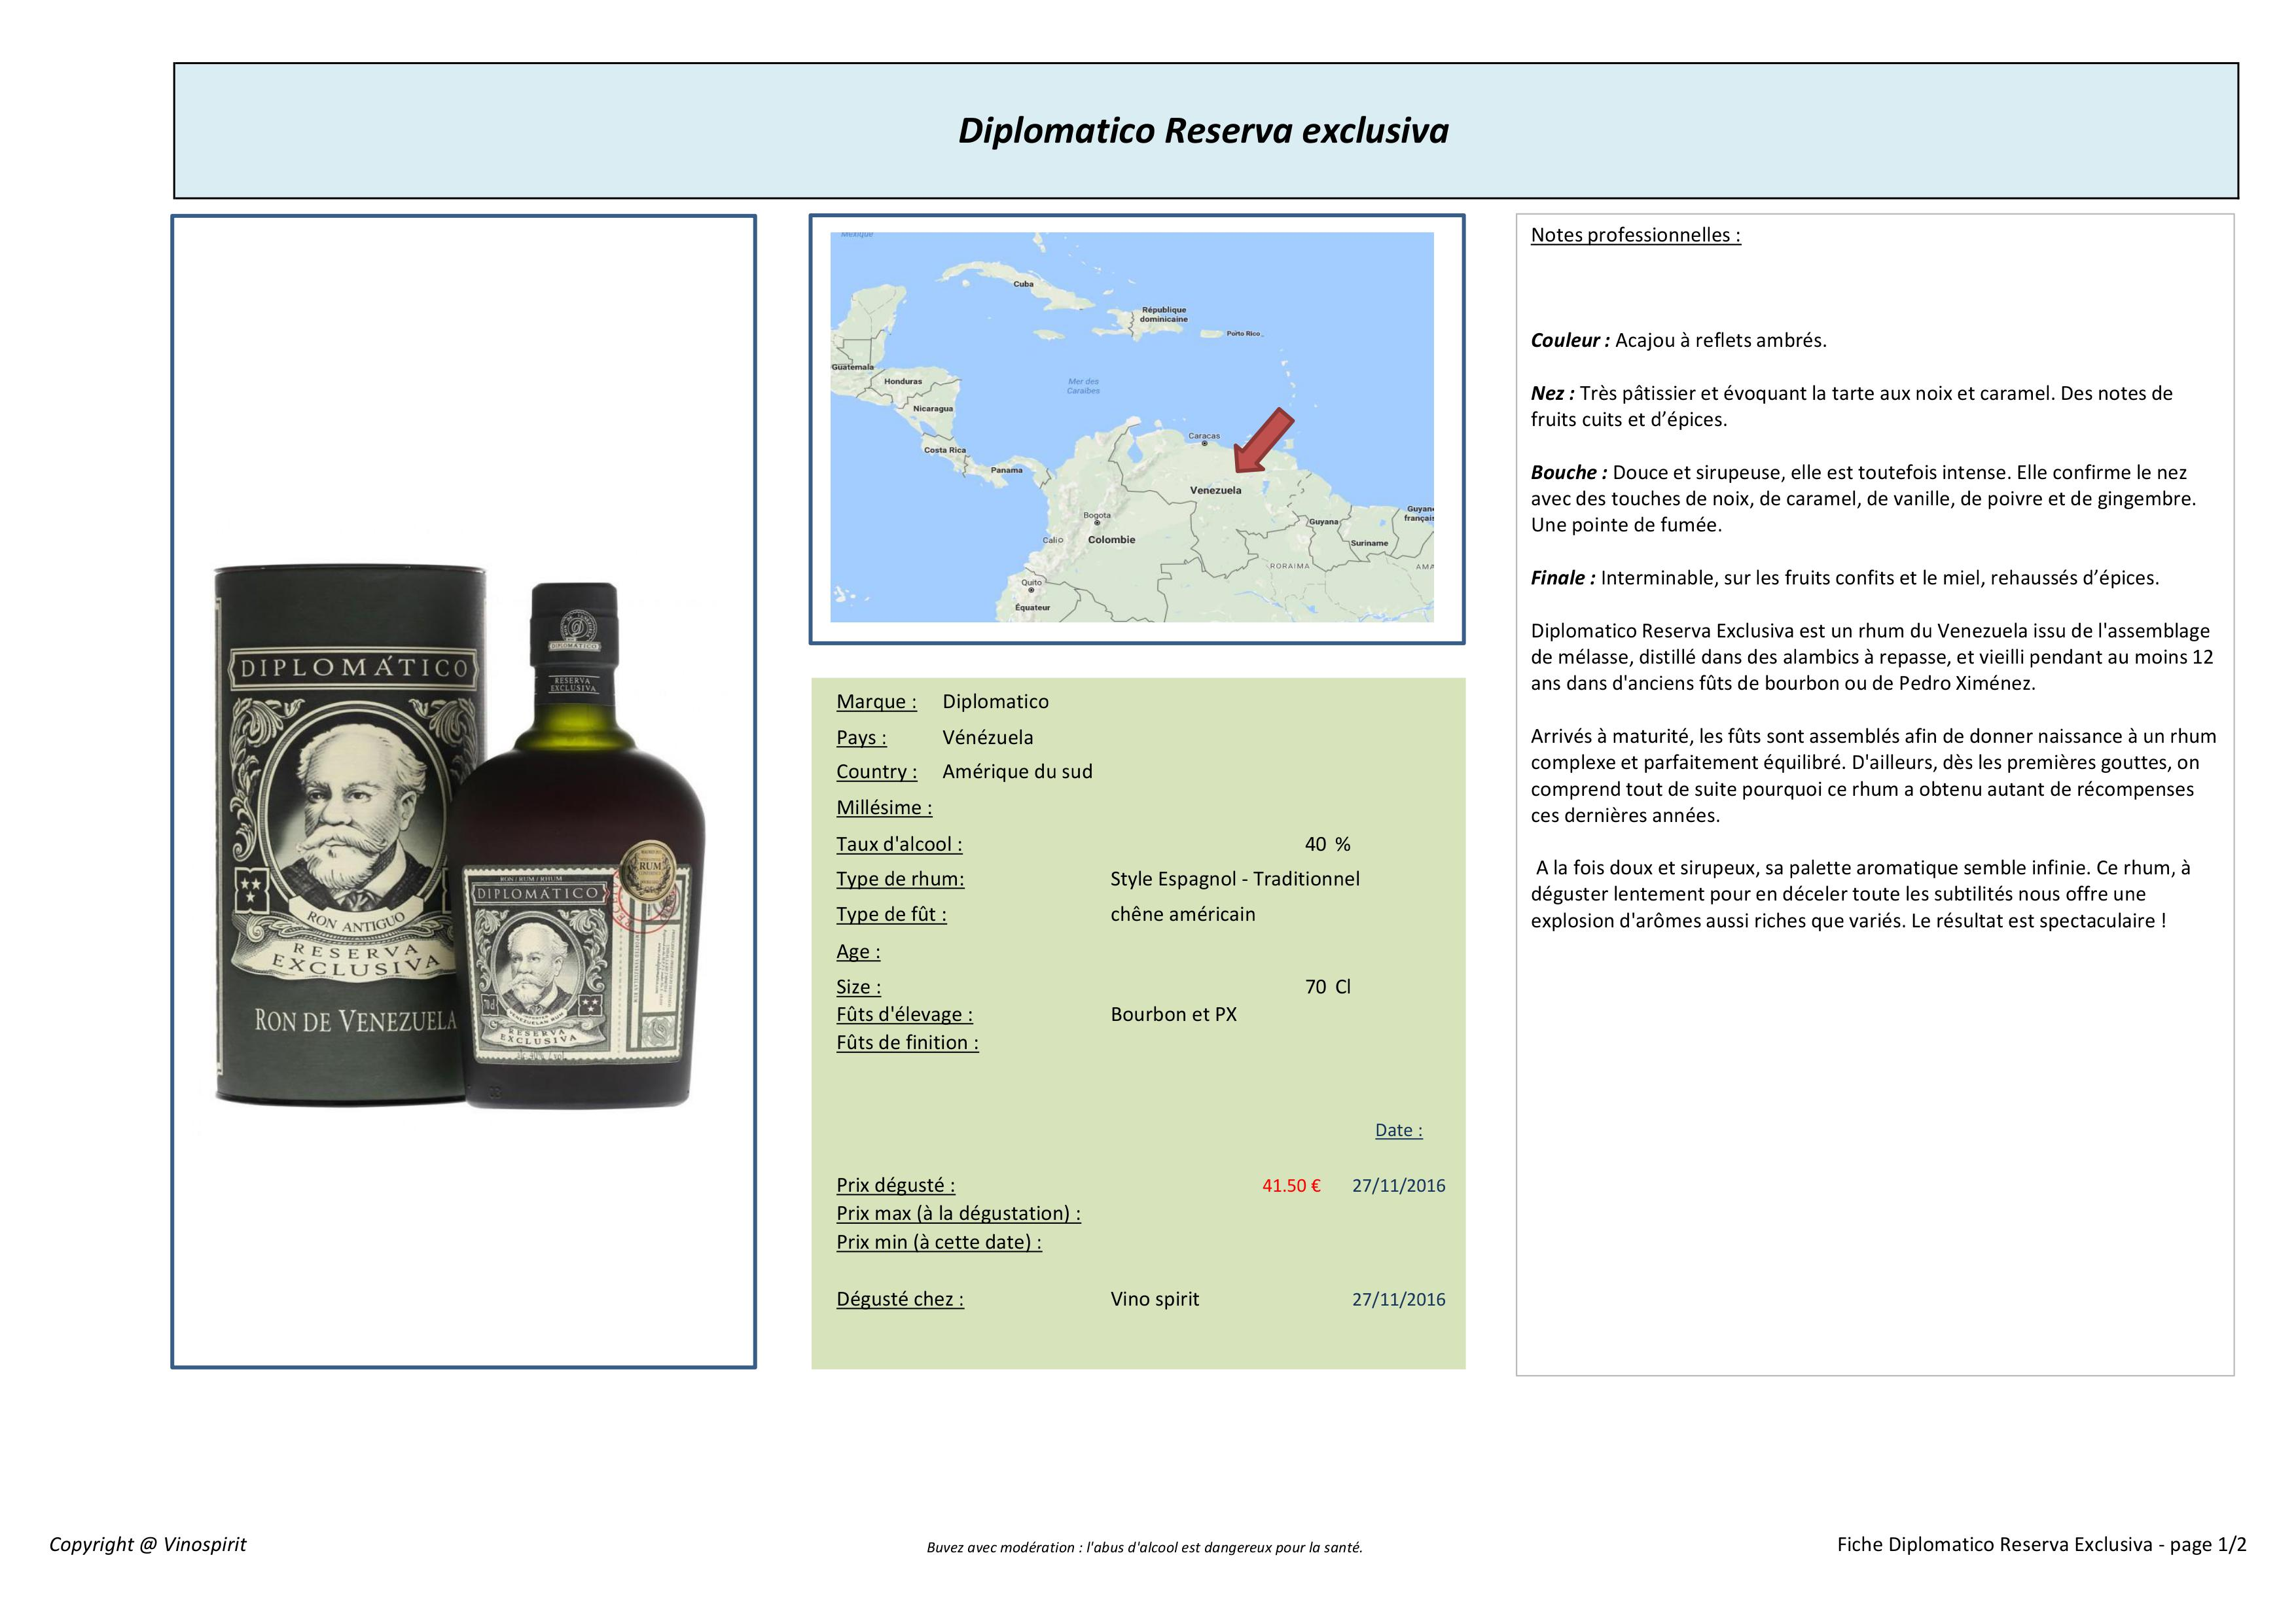 diplomatico-res-excl-01